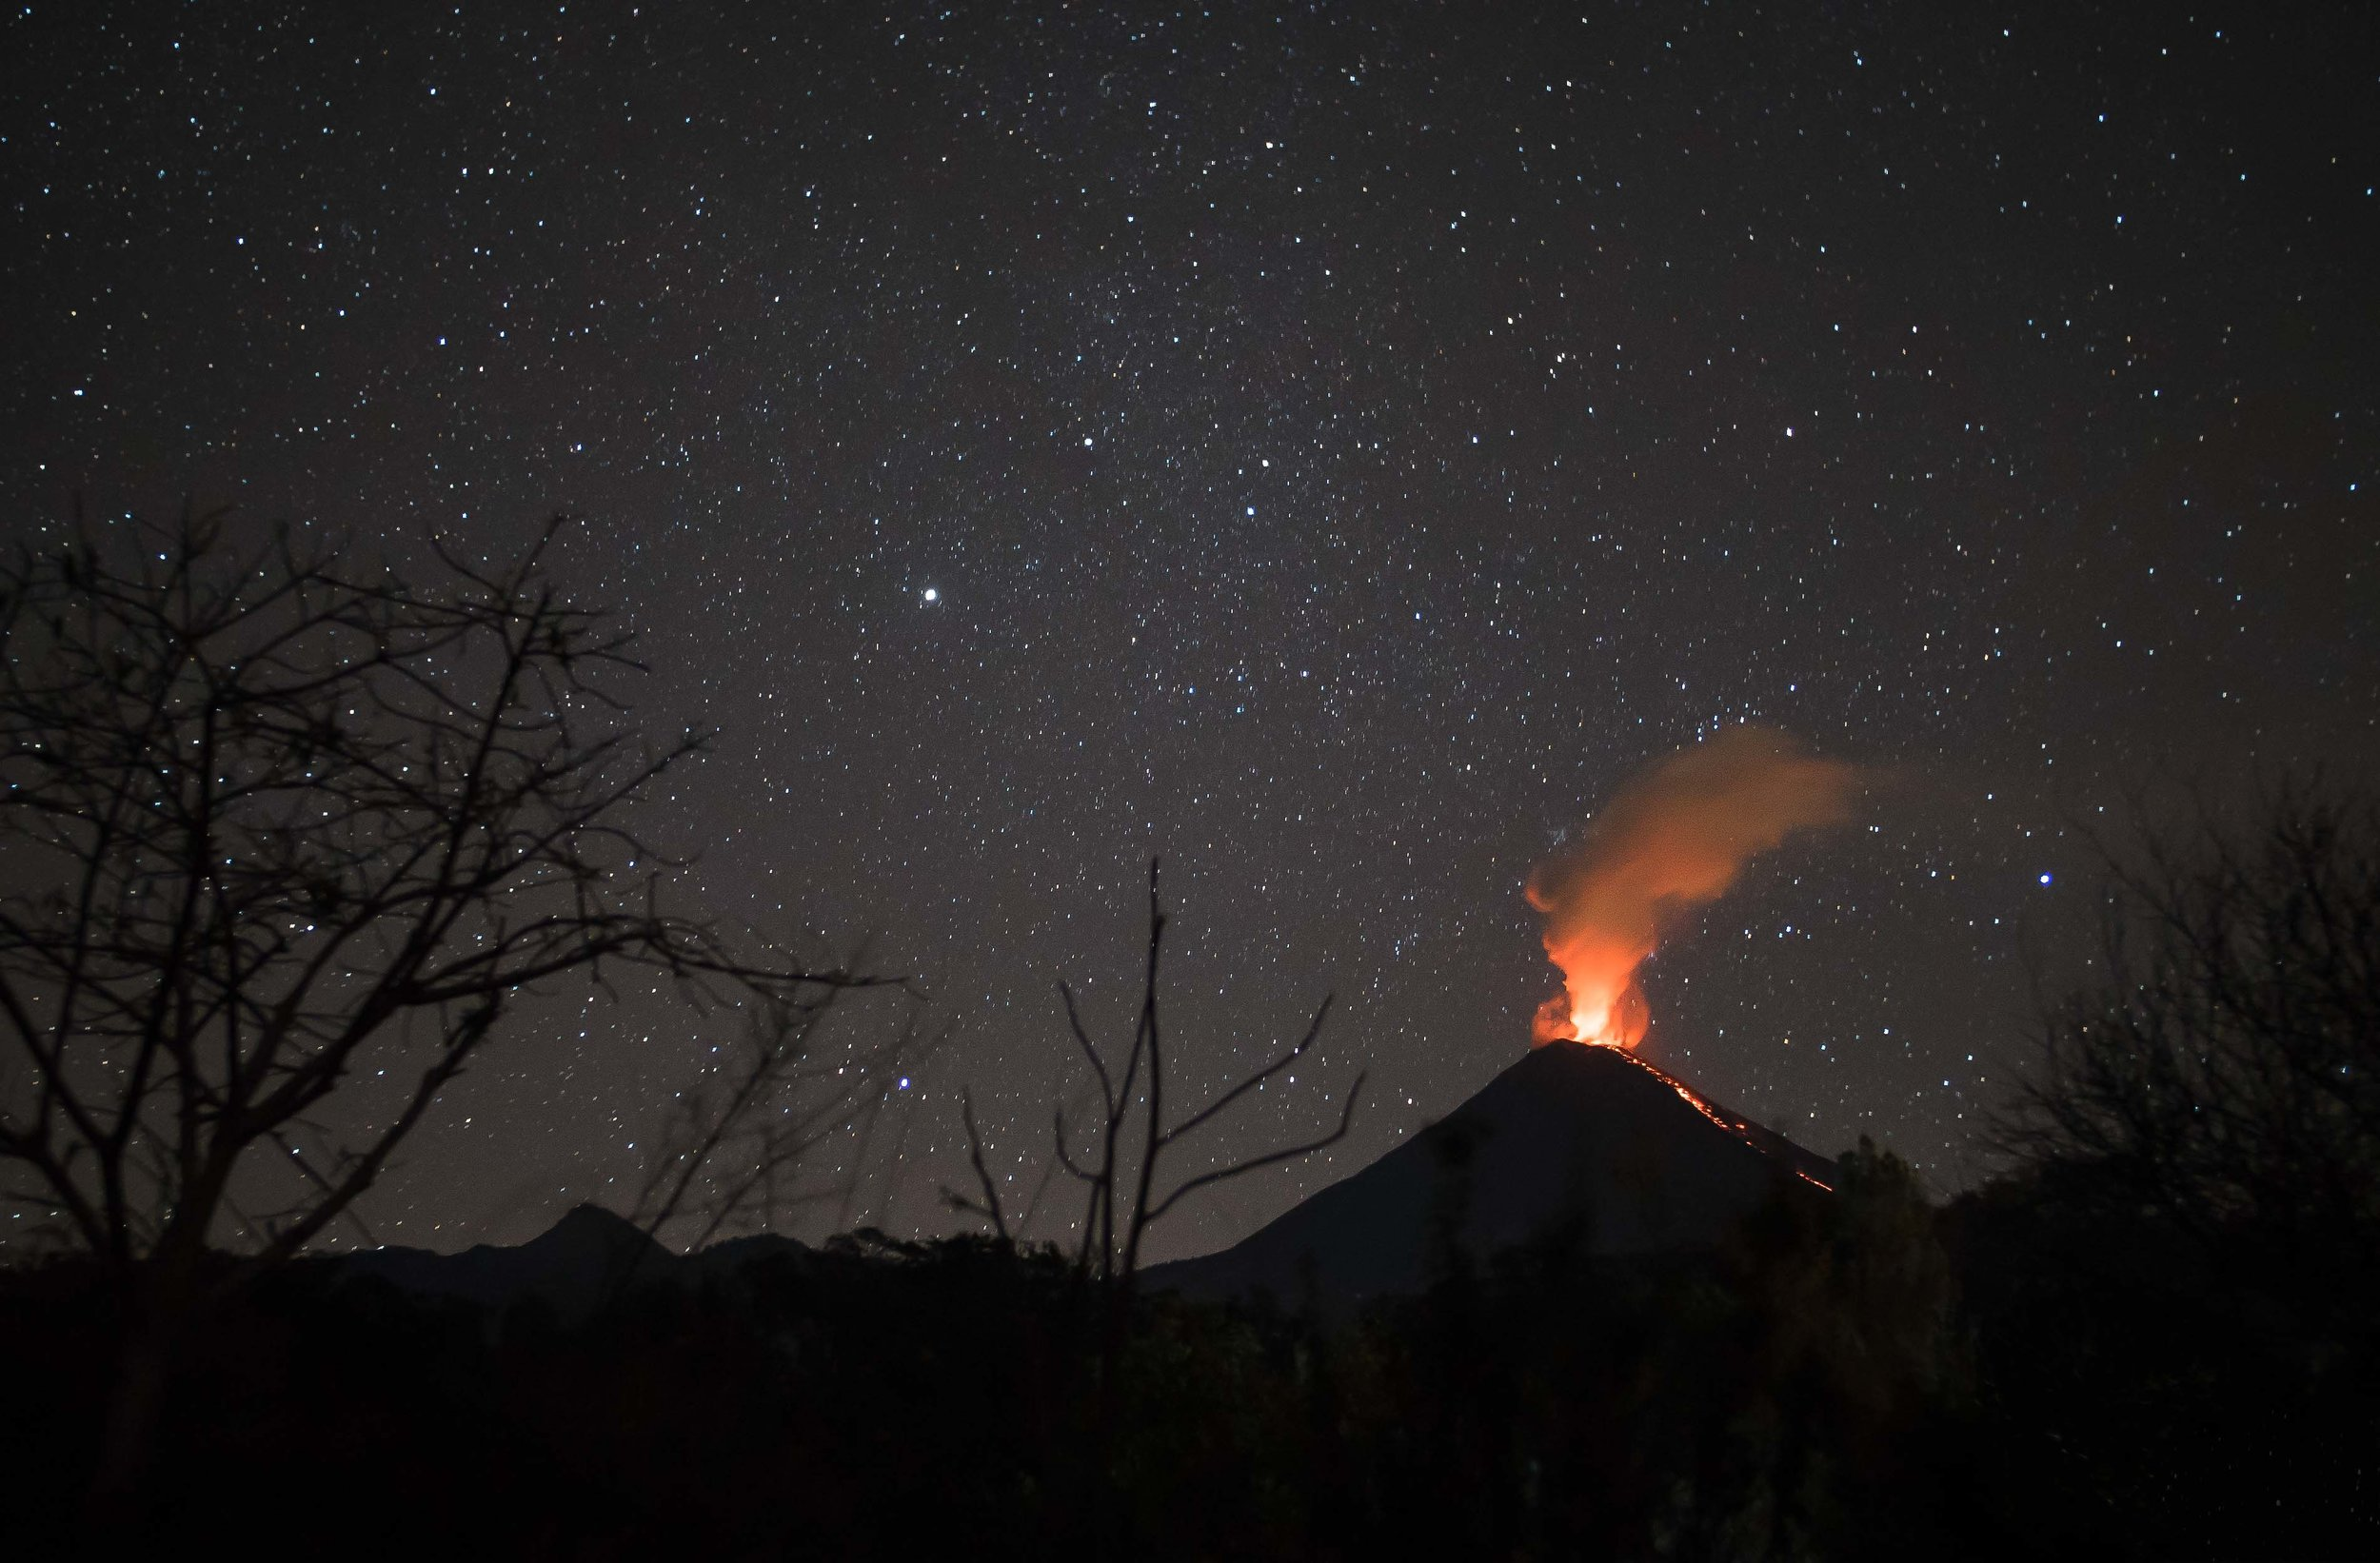 The Volcano of Colima erupting at night.